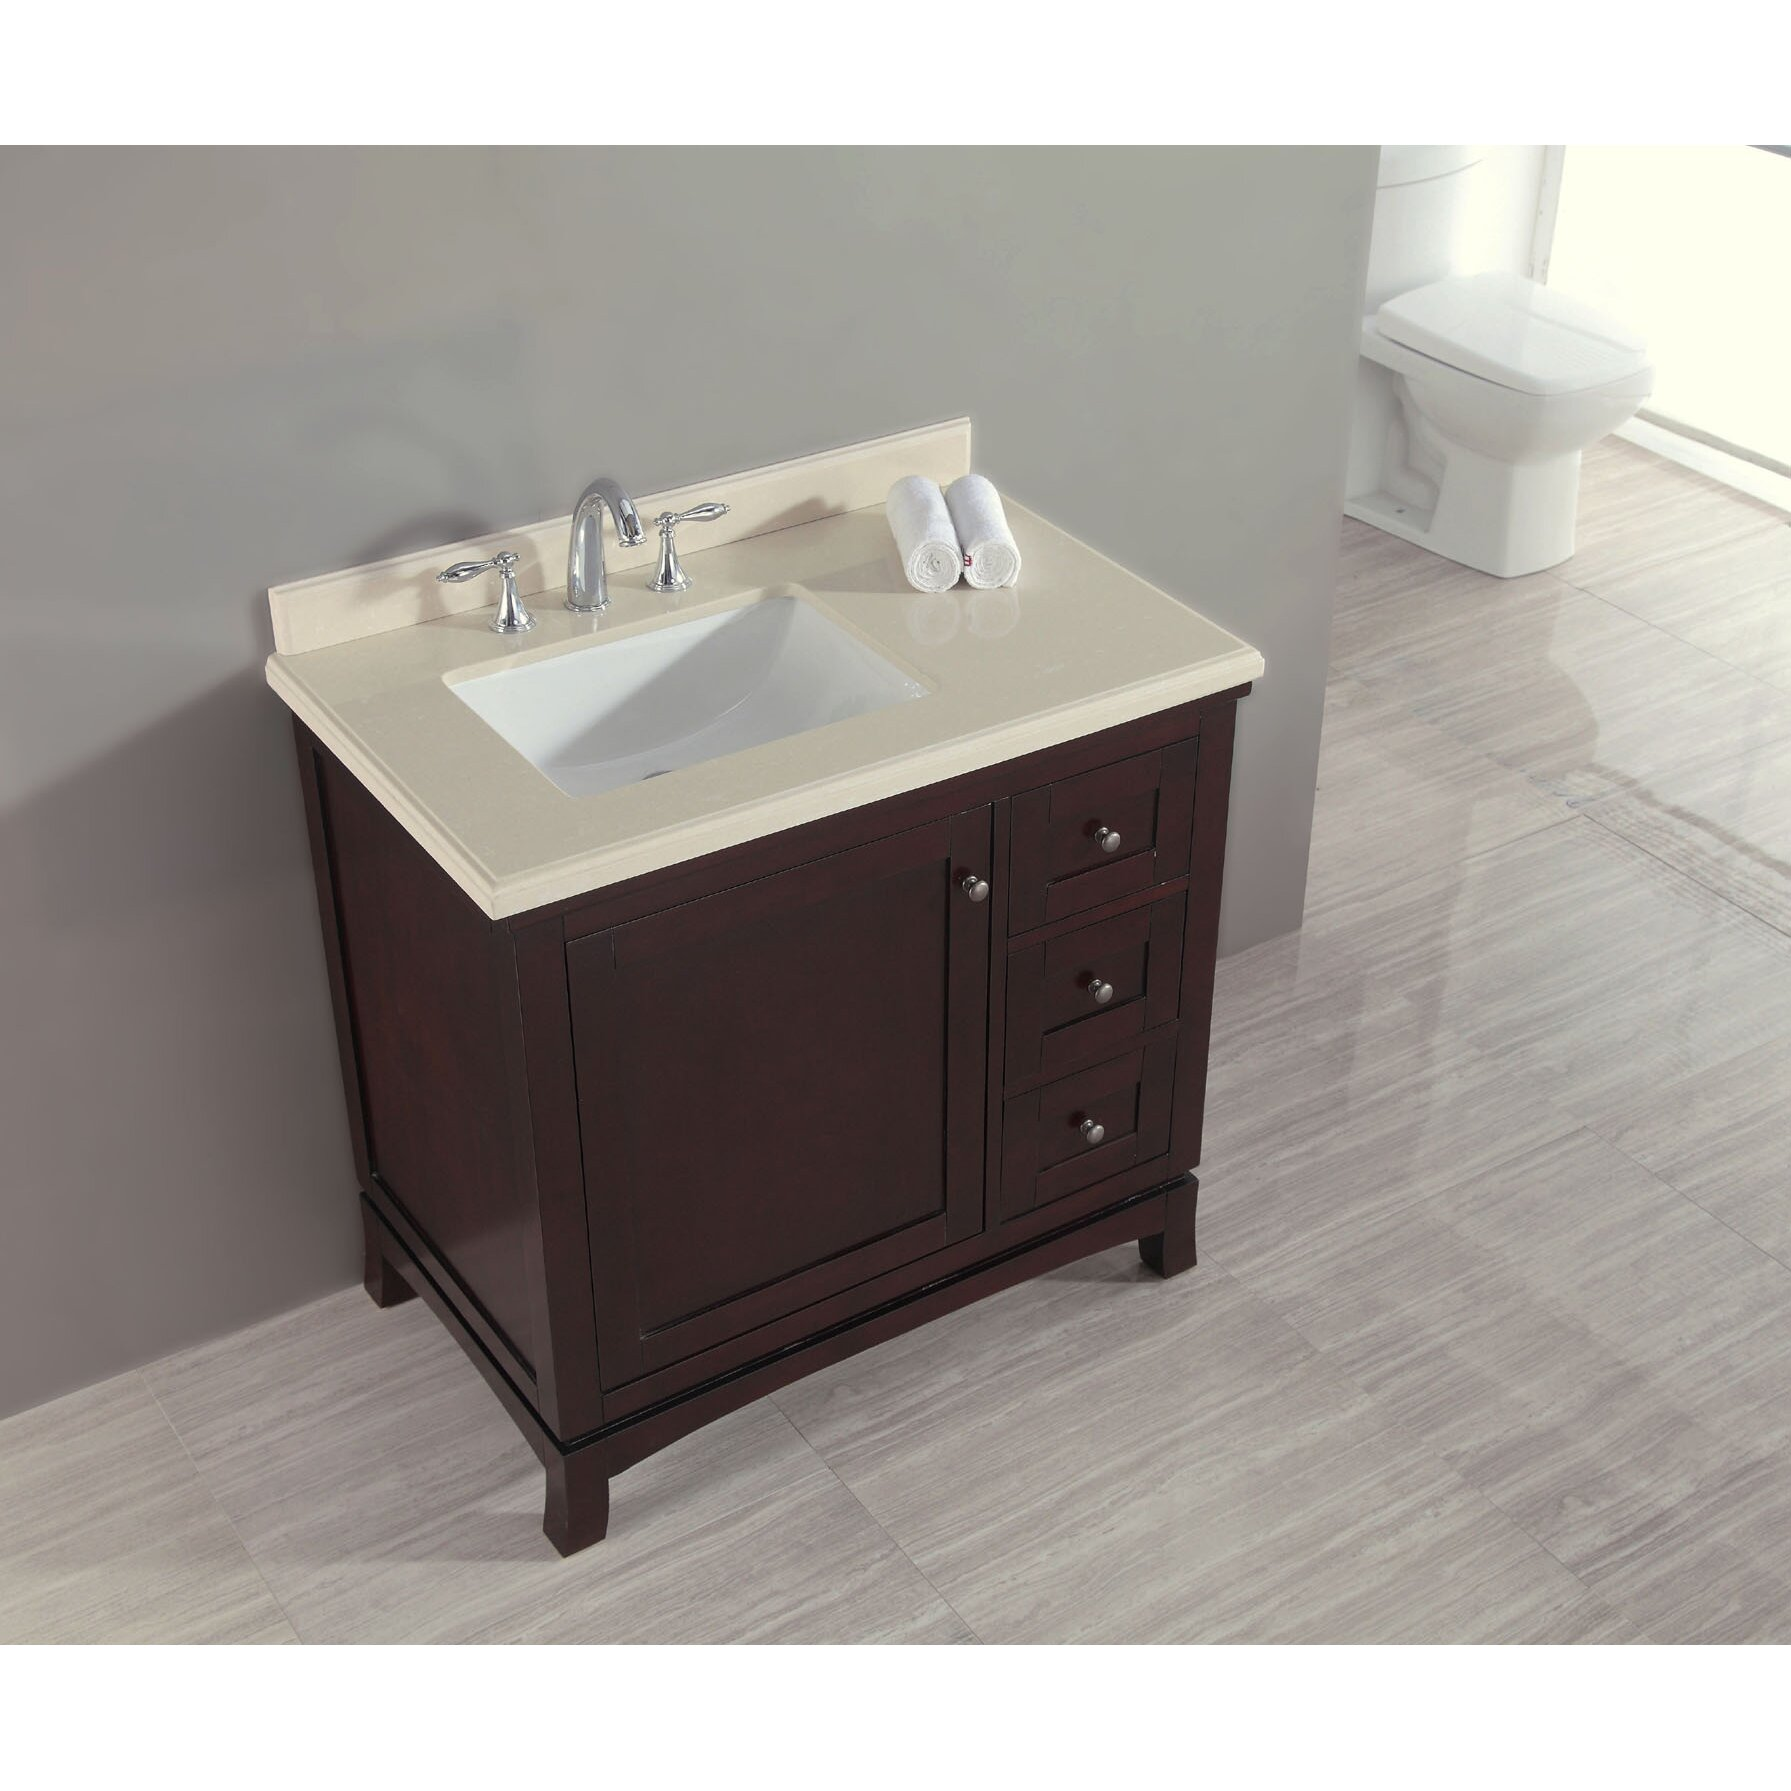 Ove decors valega 36 single bathroom vanity set reviews for Single bathroom vanity